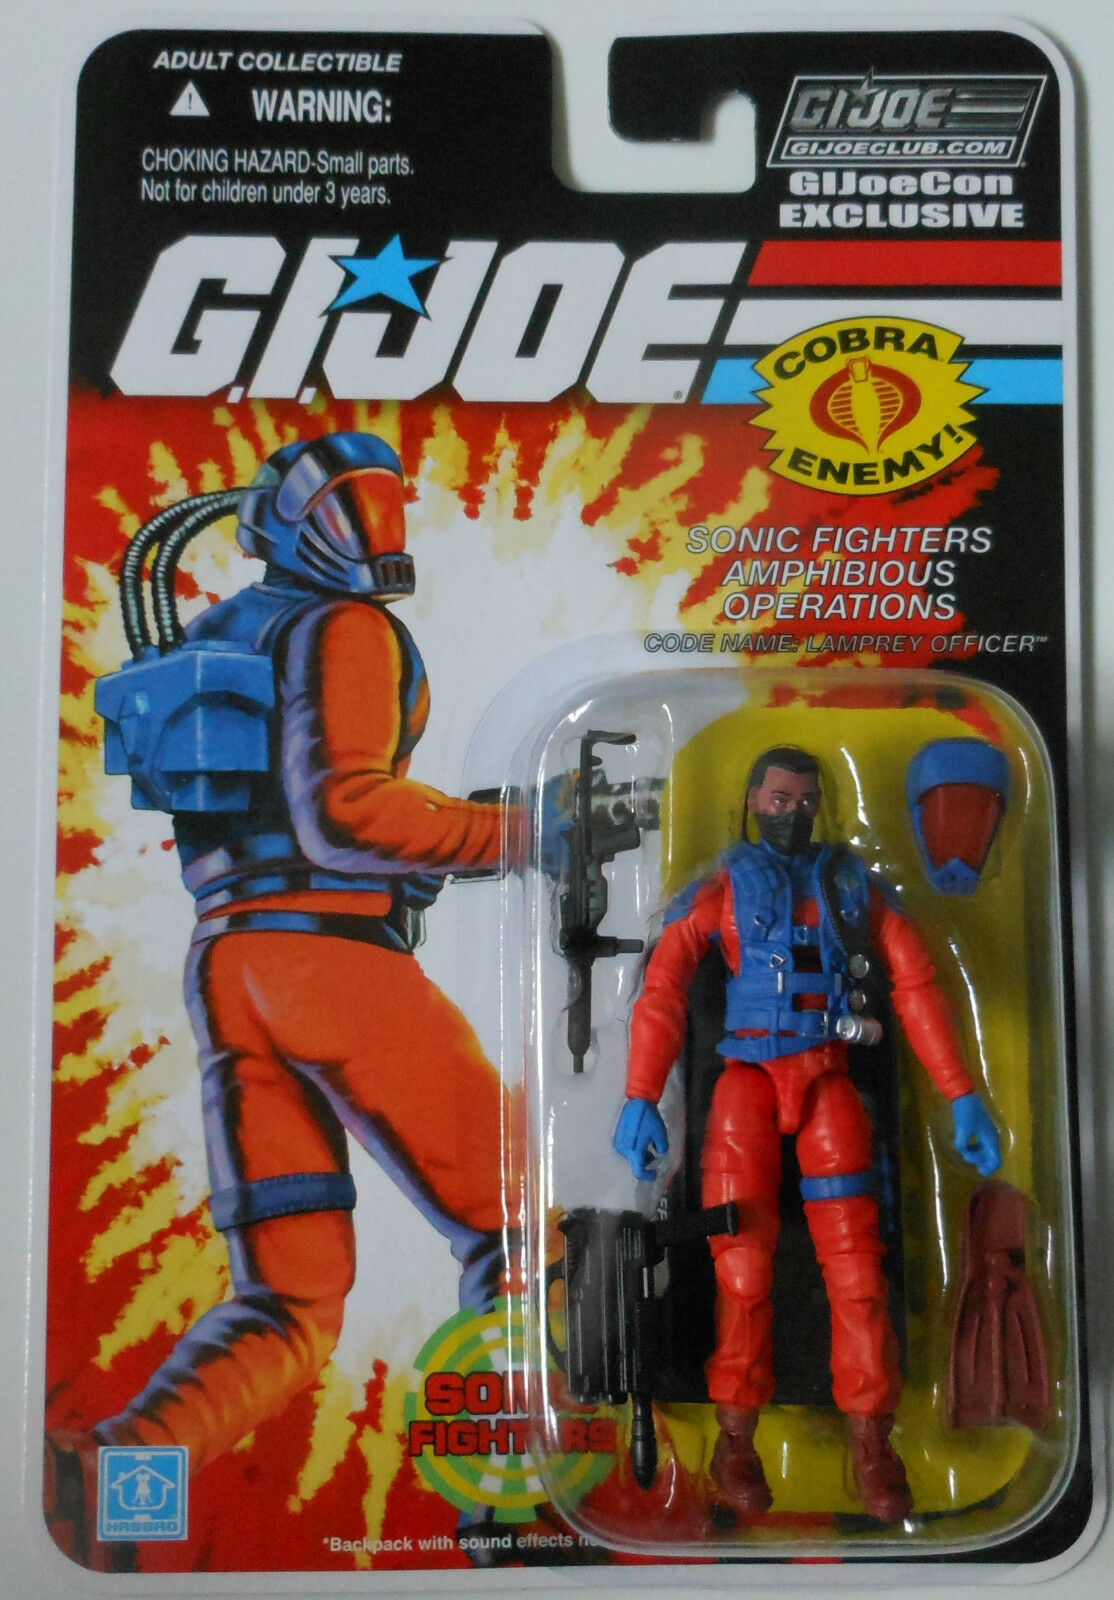 LAMPREY OFFICER SONIC FIGHTERS GI Joe Convention 2018 Exclusive figure MOC